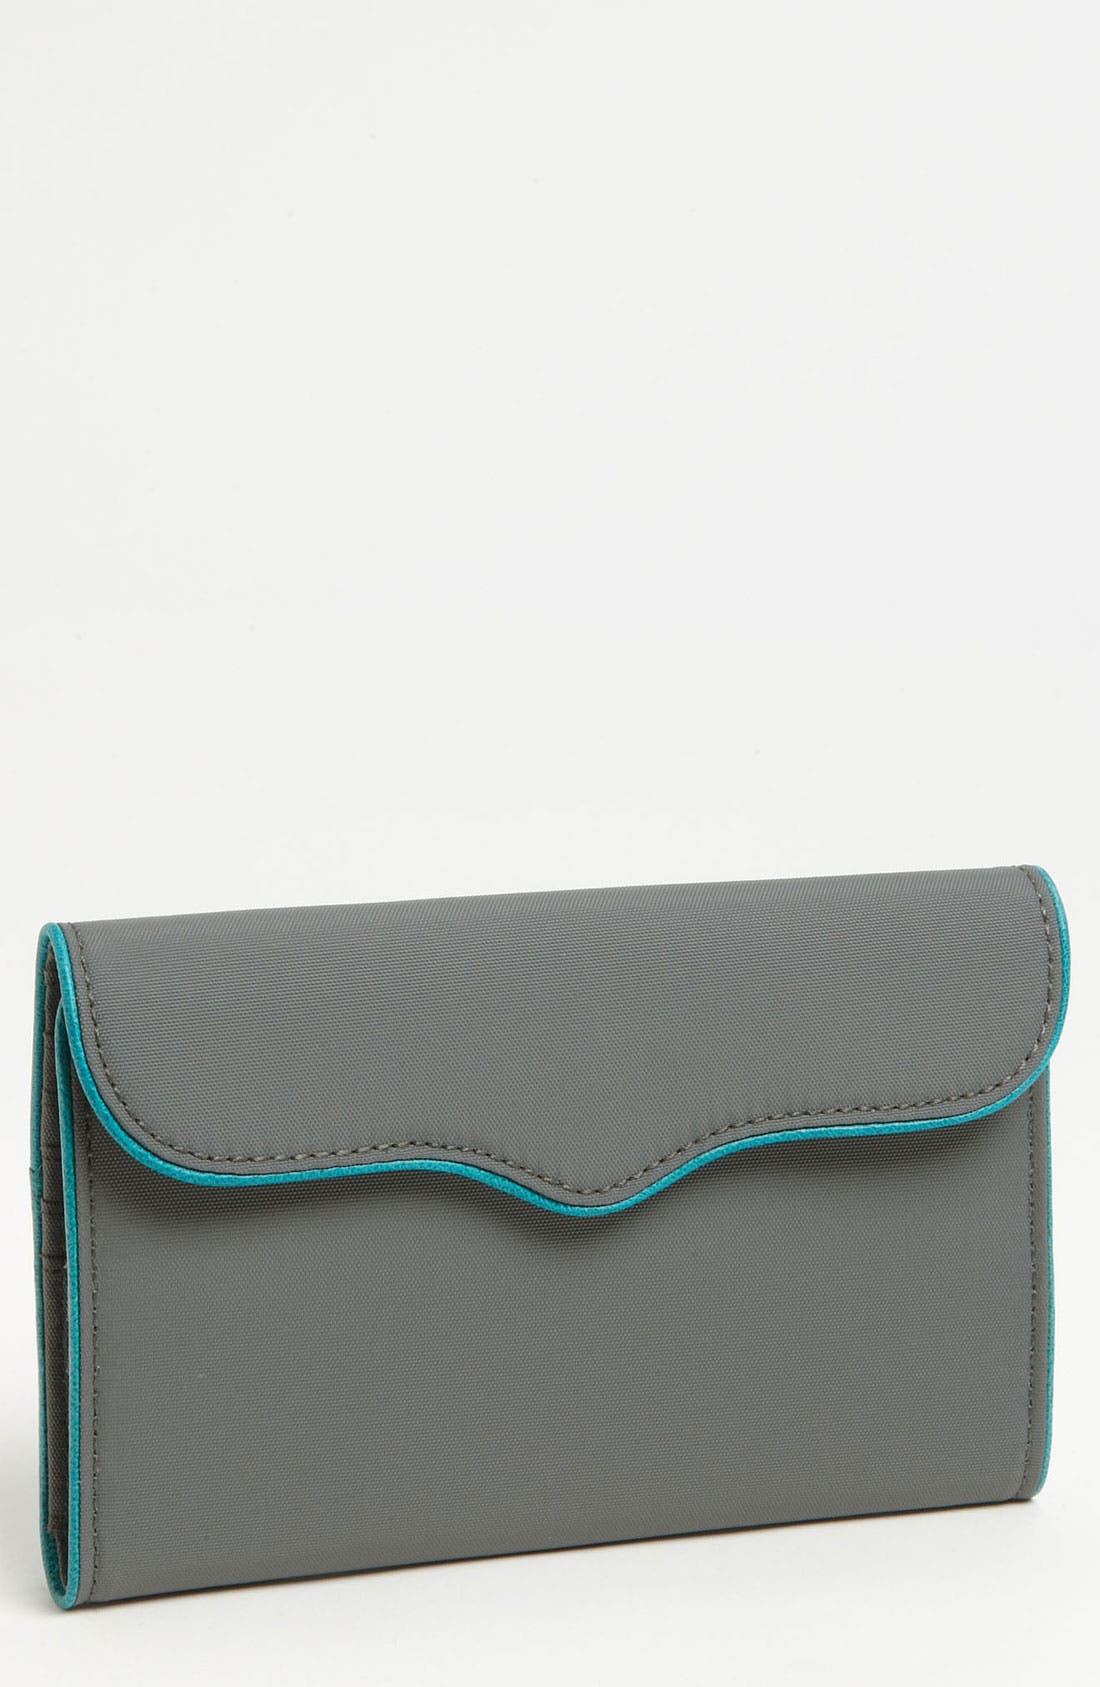 Alternate Image 1 Selected - Rebecca Minkoff Coated Nylon Passport Wallet